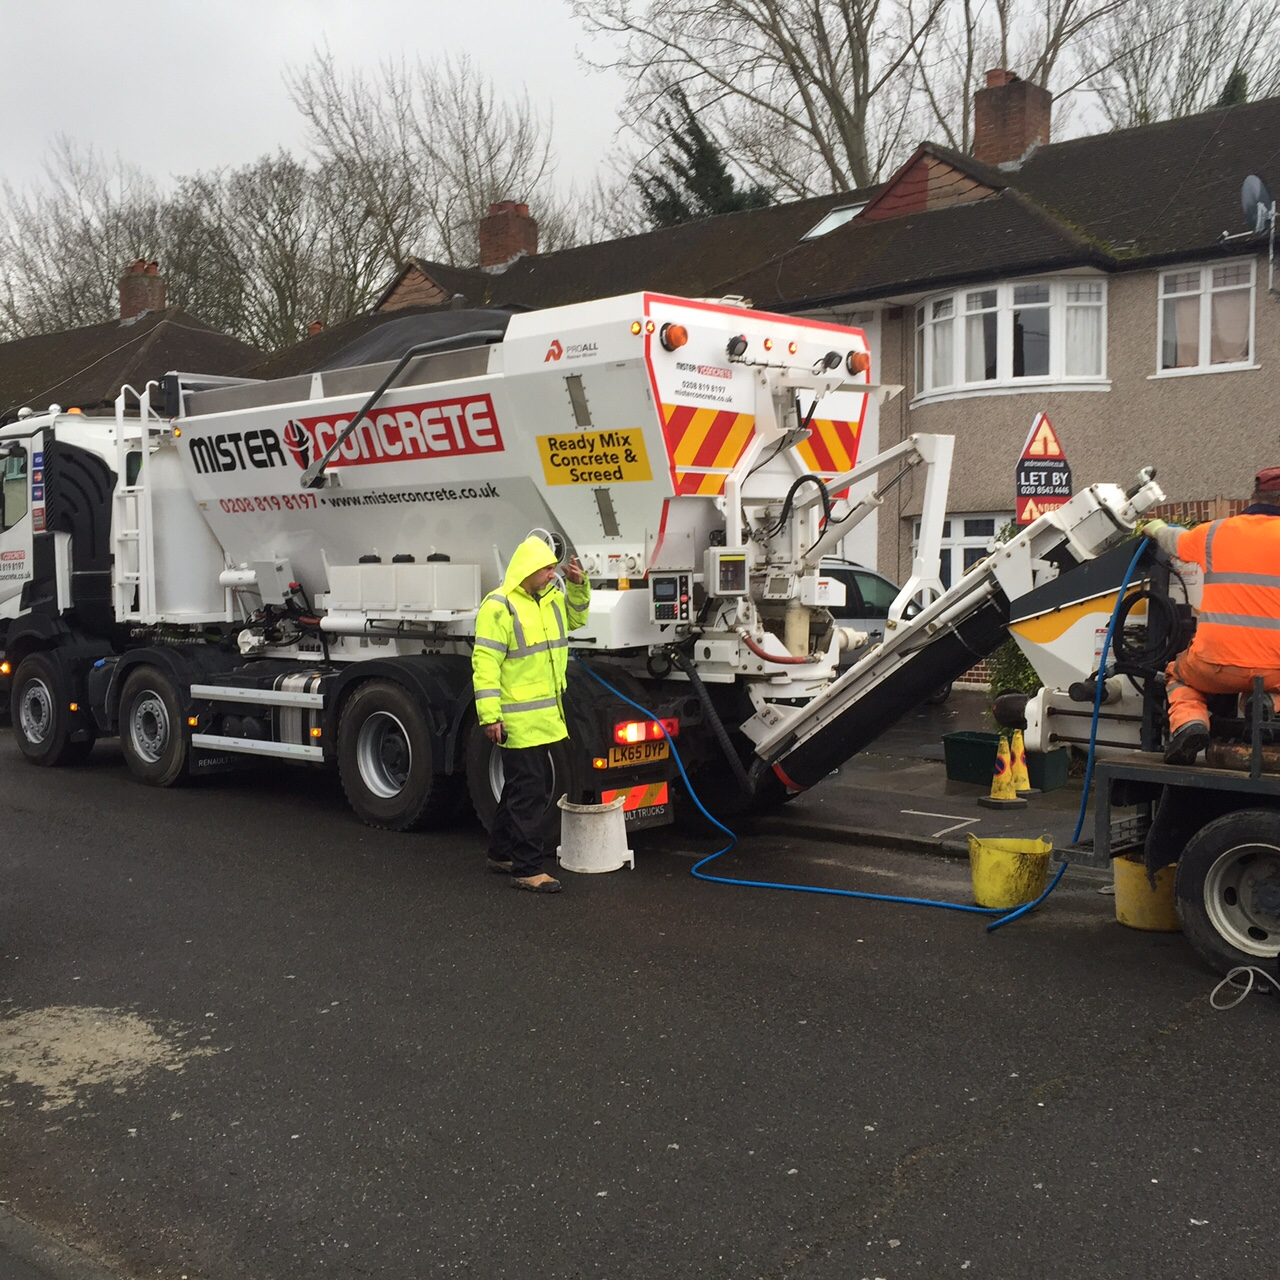 Ready mix concrete in South London